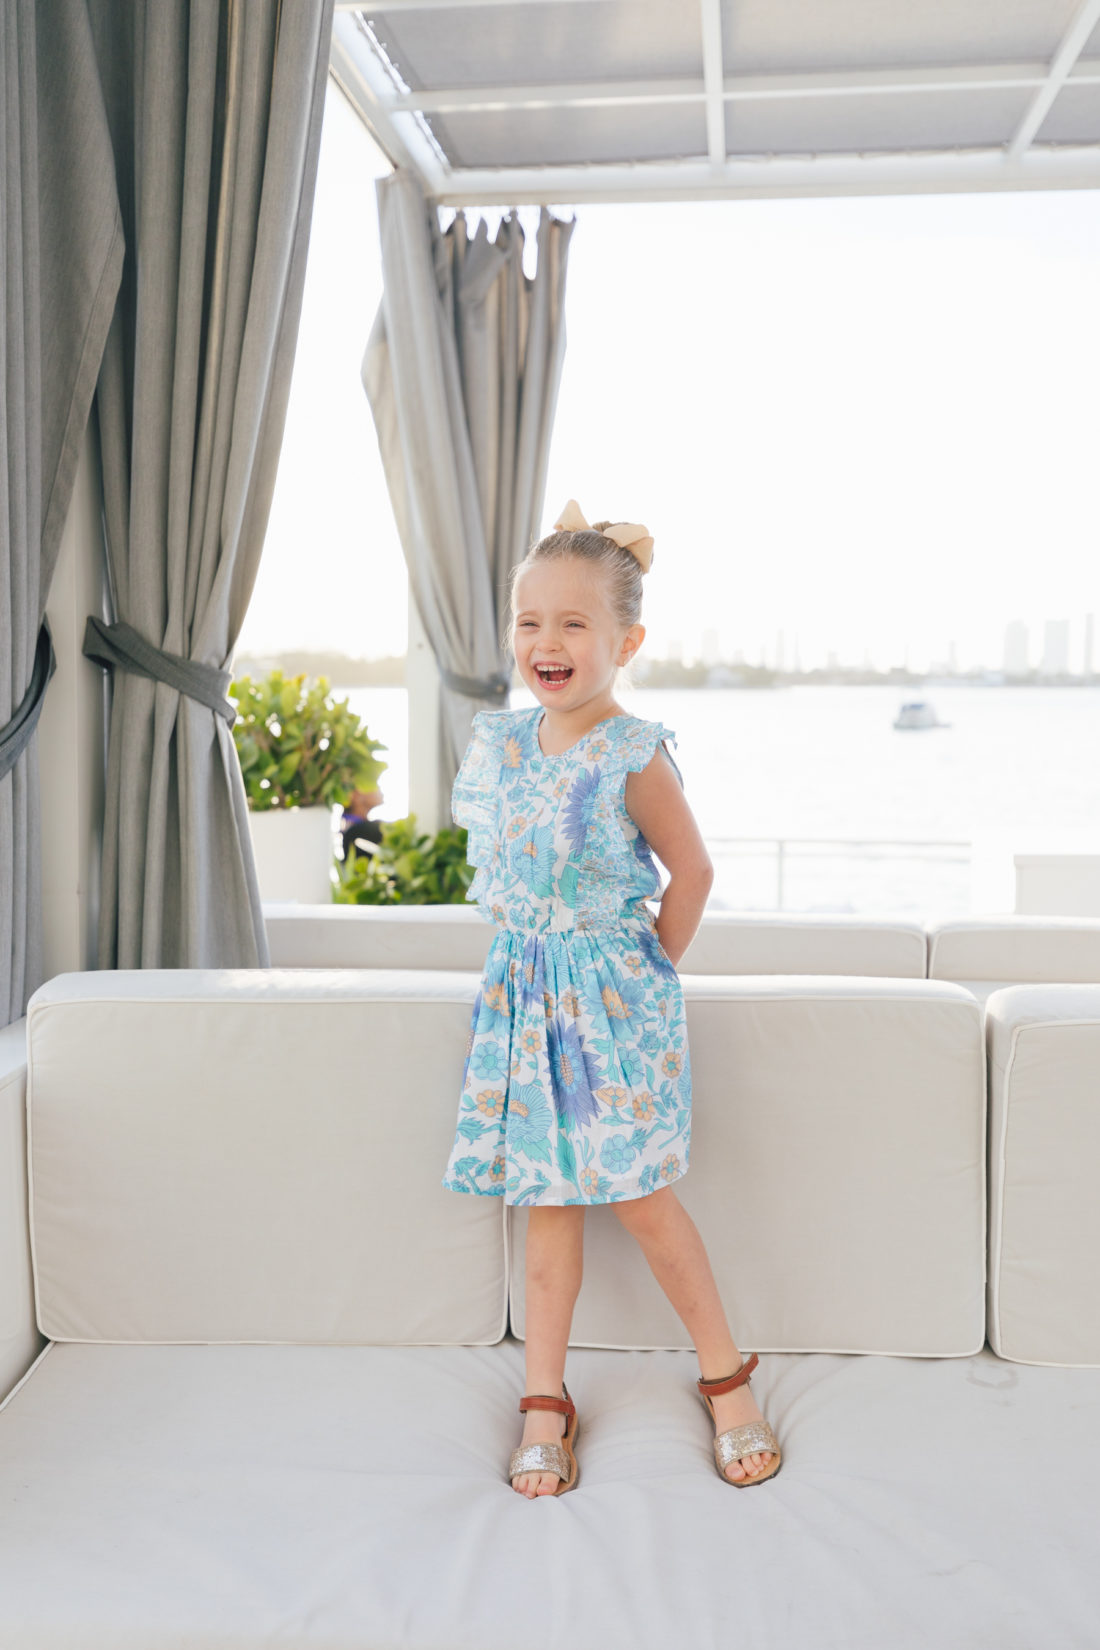 Marlowe Martino laughs while standing in Miami wearing the fantasia dress from the Happily Eva After x Masala Baby capsule collection